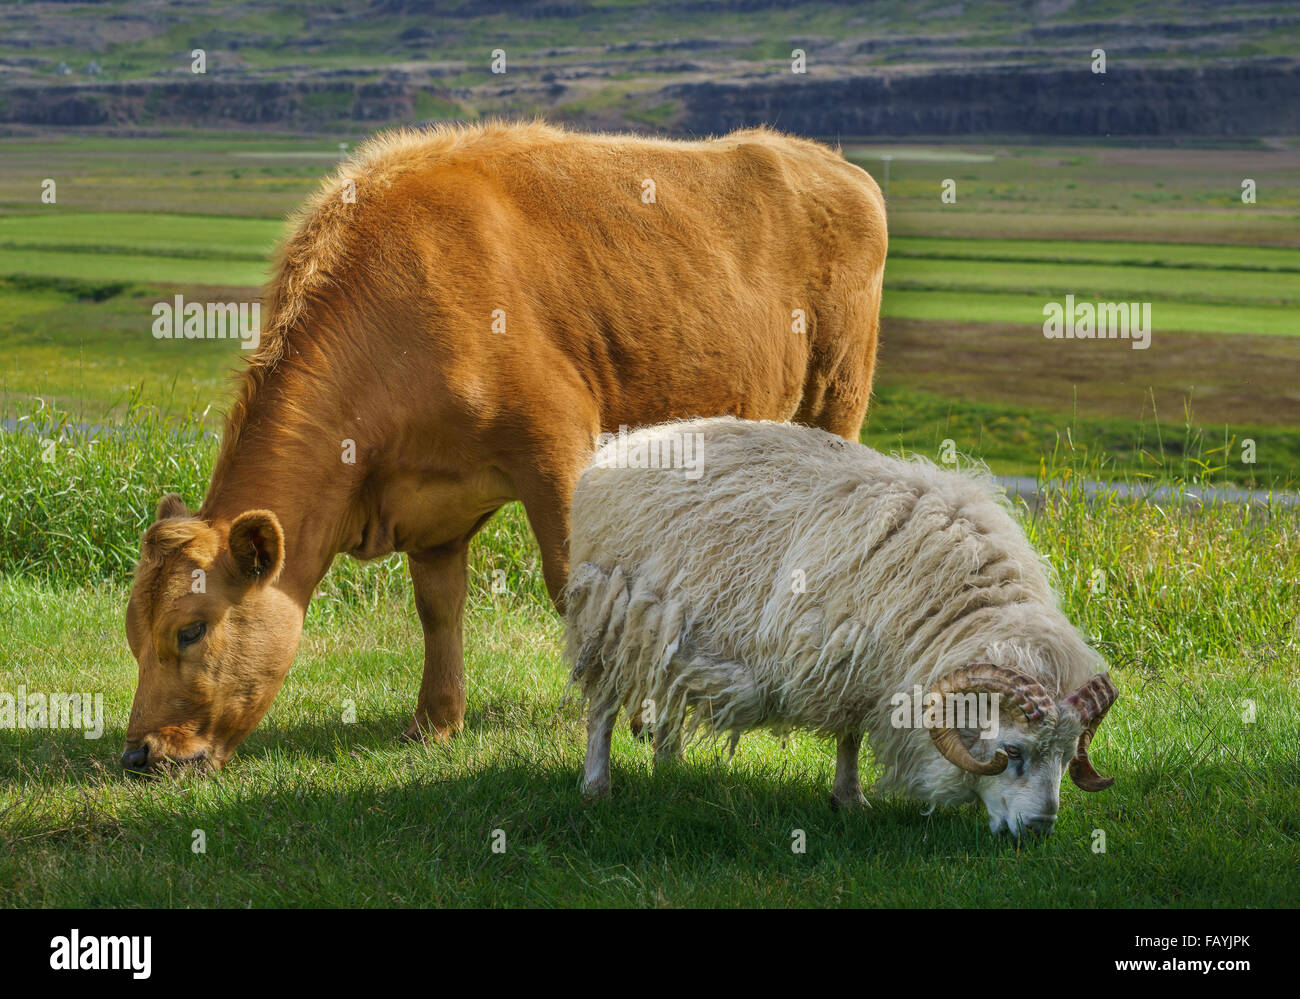 Young cow and sheep are free to roam and graze on grass, Hraunsnef Farm, Nordurardalur Valley, Iceland - Stock Image